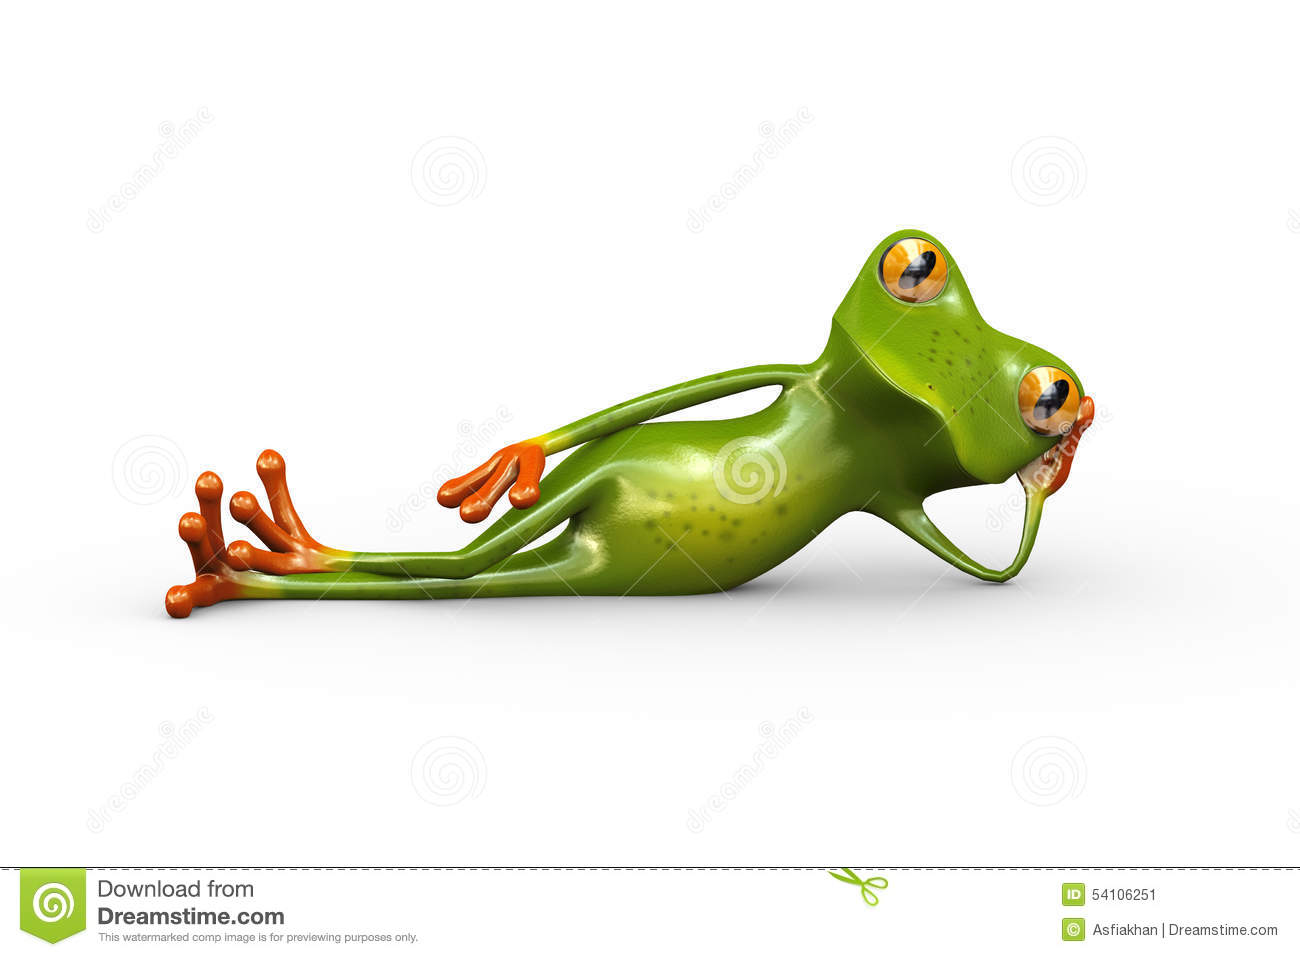 Cute Funny Wallpapers For Lazy Peopke 3d Frog Stylish Lying On Floor Stock Illustration Image